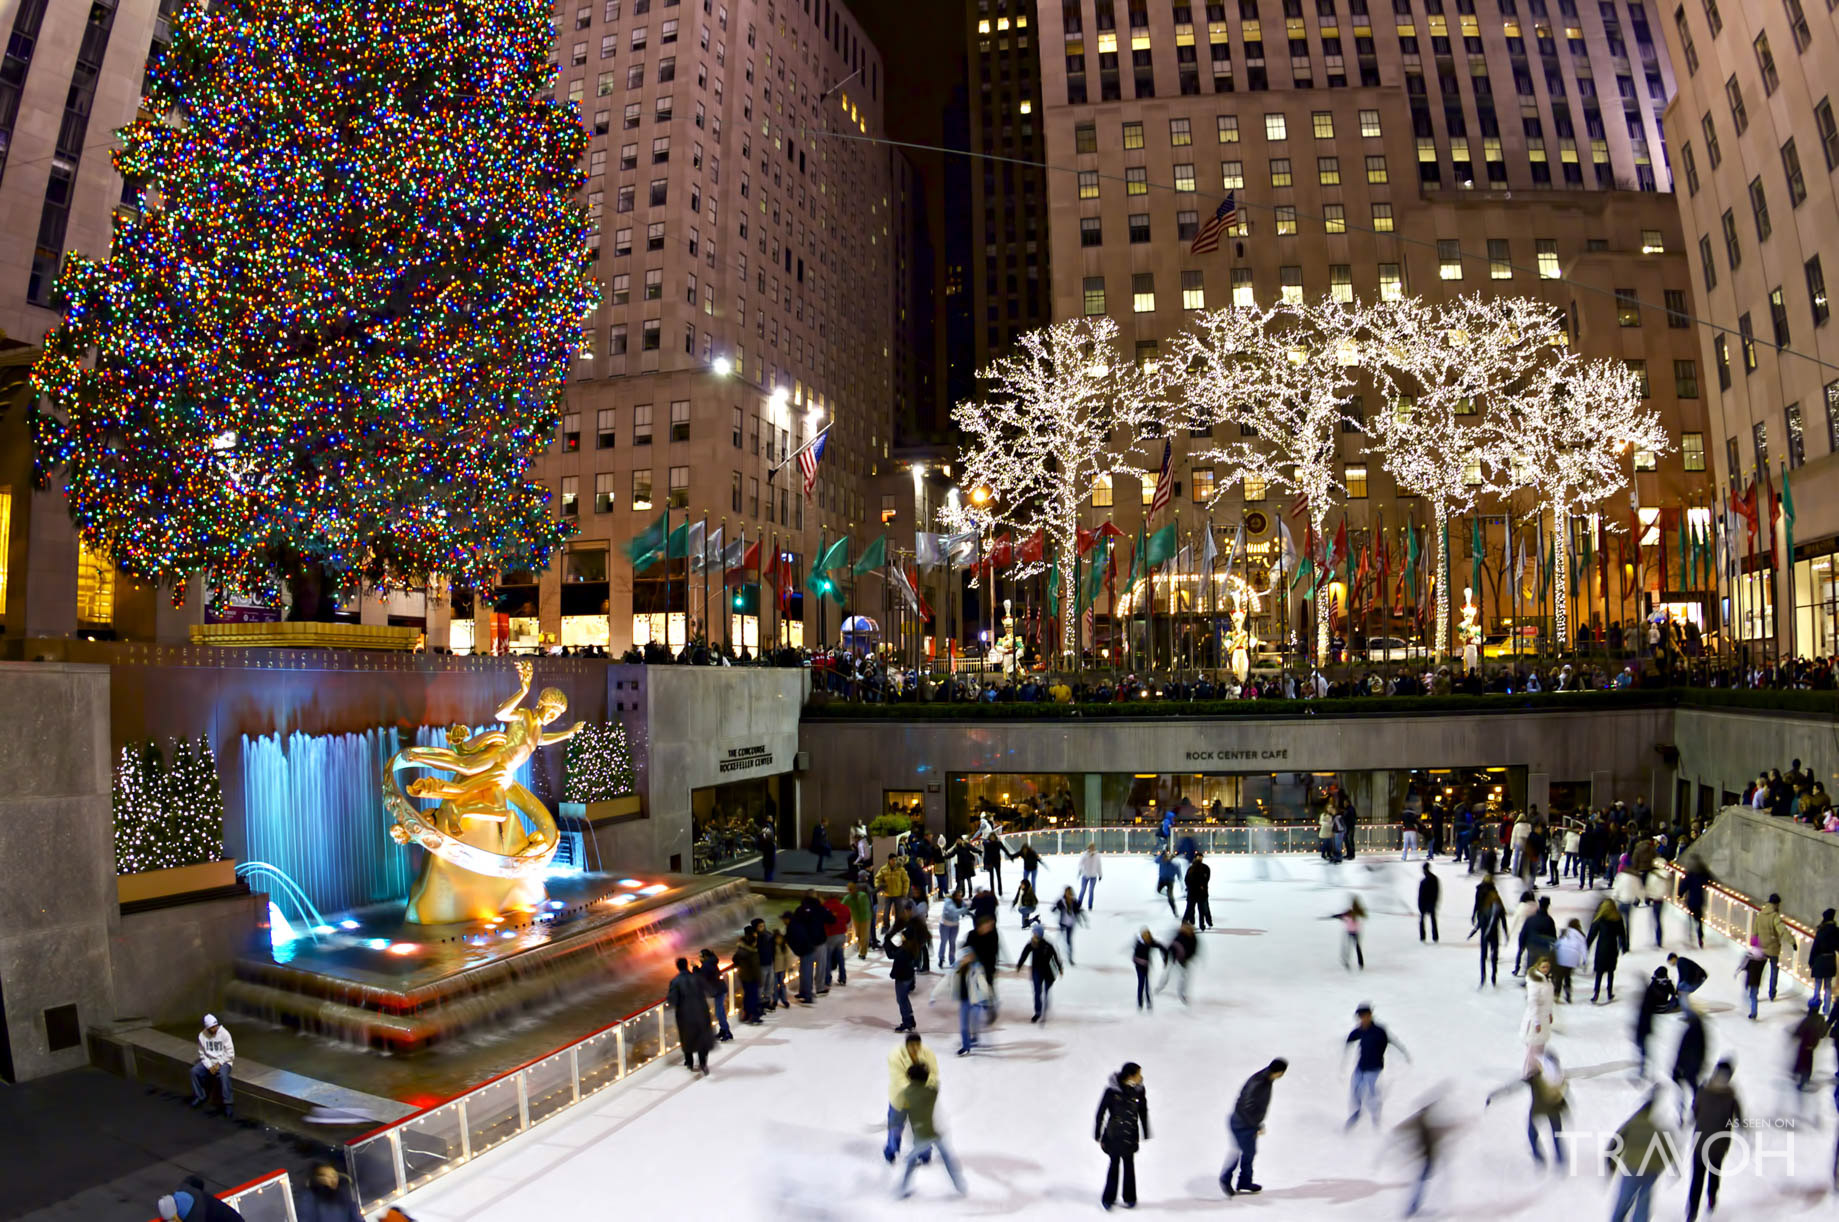 Skating at the Rink at Rockefeller Center - 600 5th Ave, New York, NY, USA